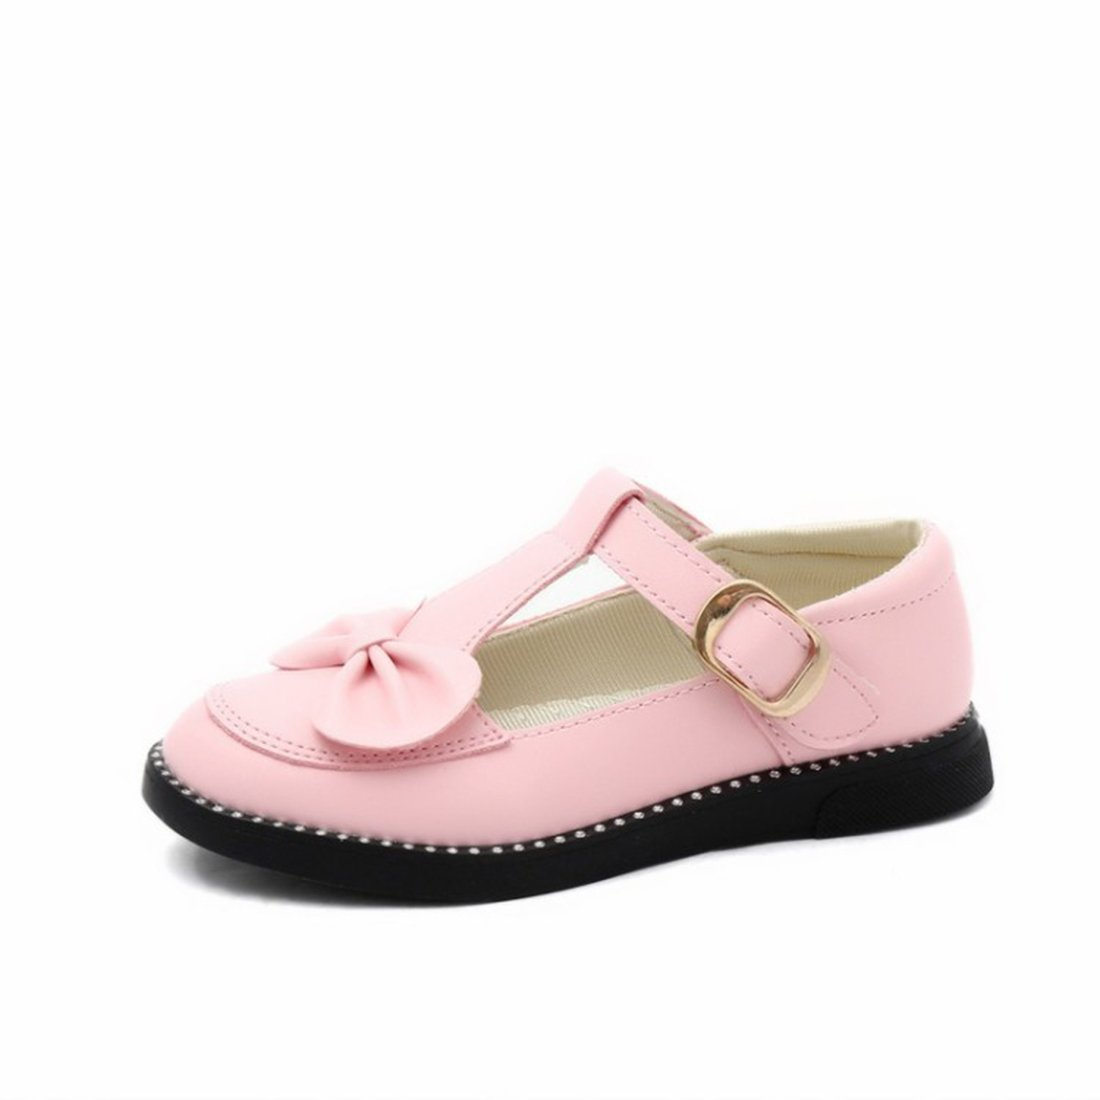 O&N Girls Children Bowknot Ballet Flat Mary Janes Princess Bridesmaid Wedding Party School Shoes by ON